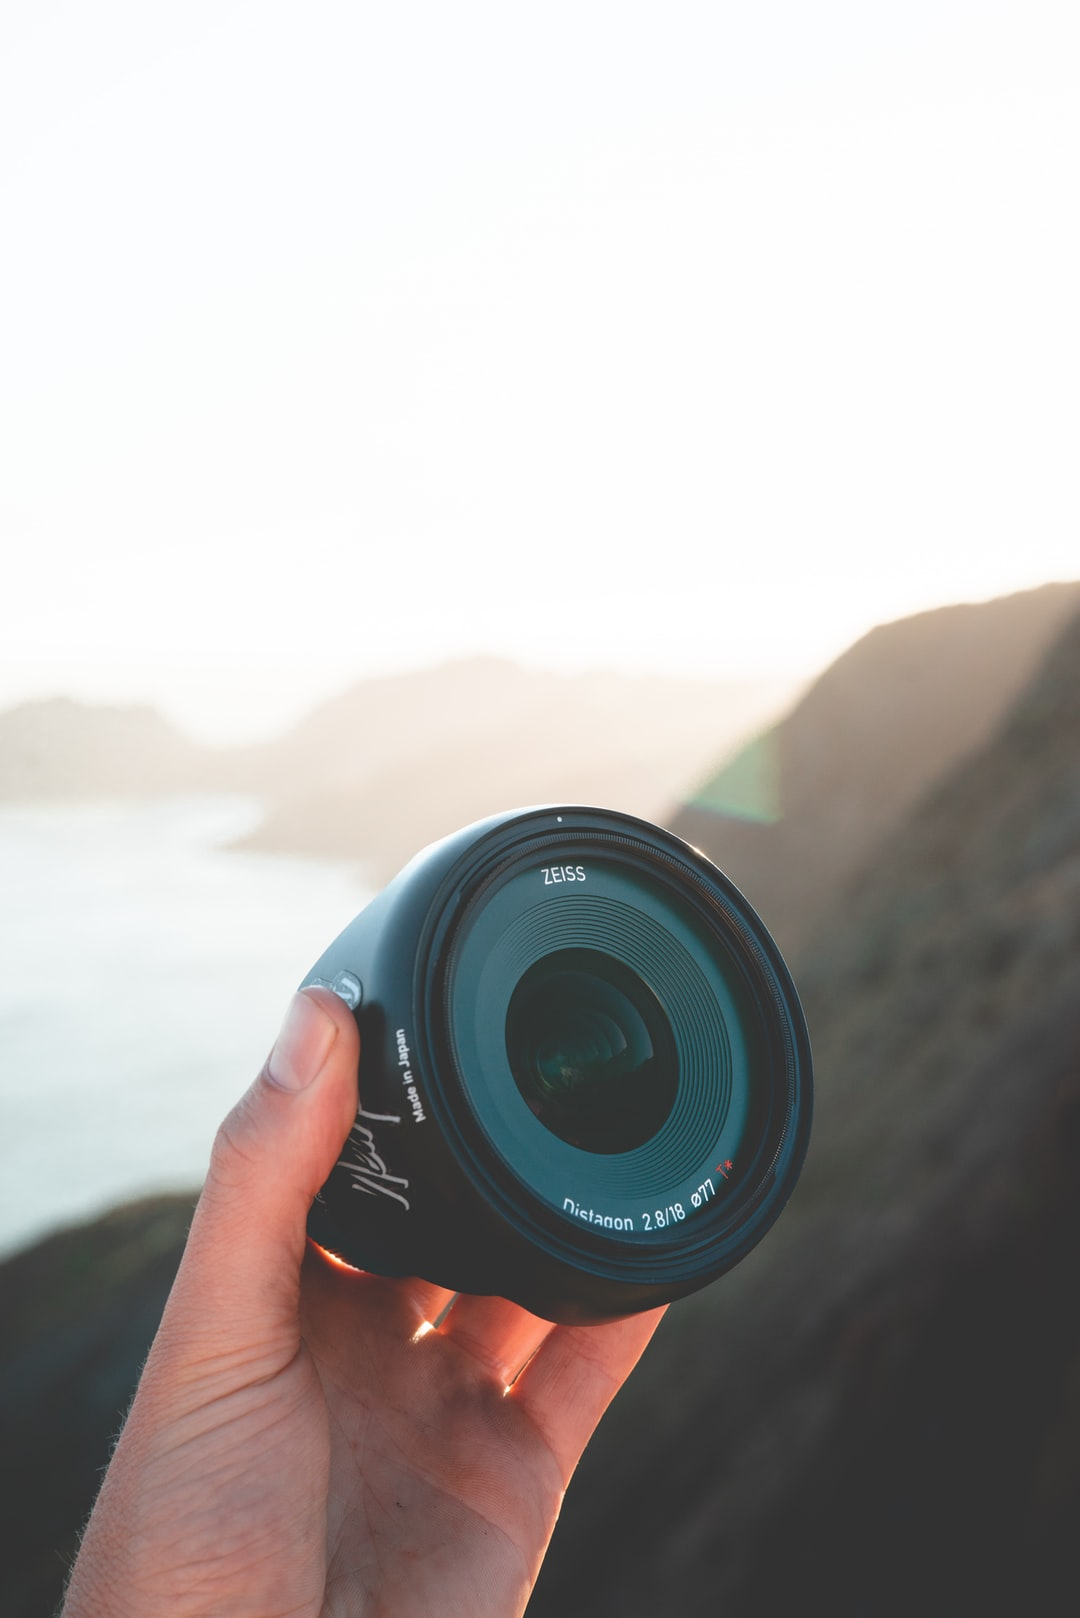 This lens is great for shooting along the coast when you need to fit expansive views into the frame.